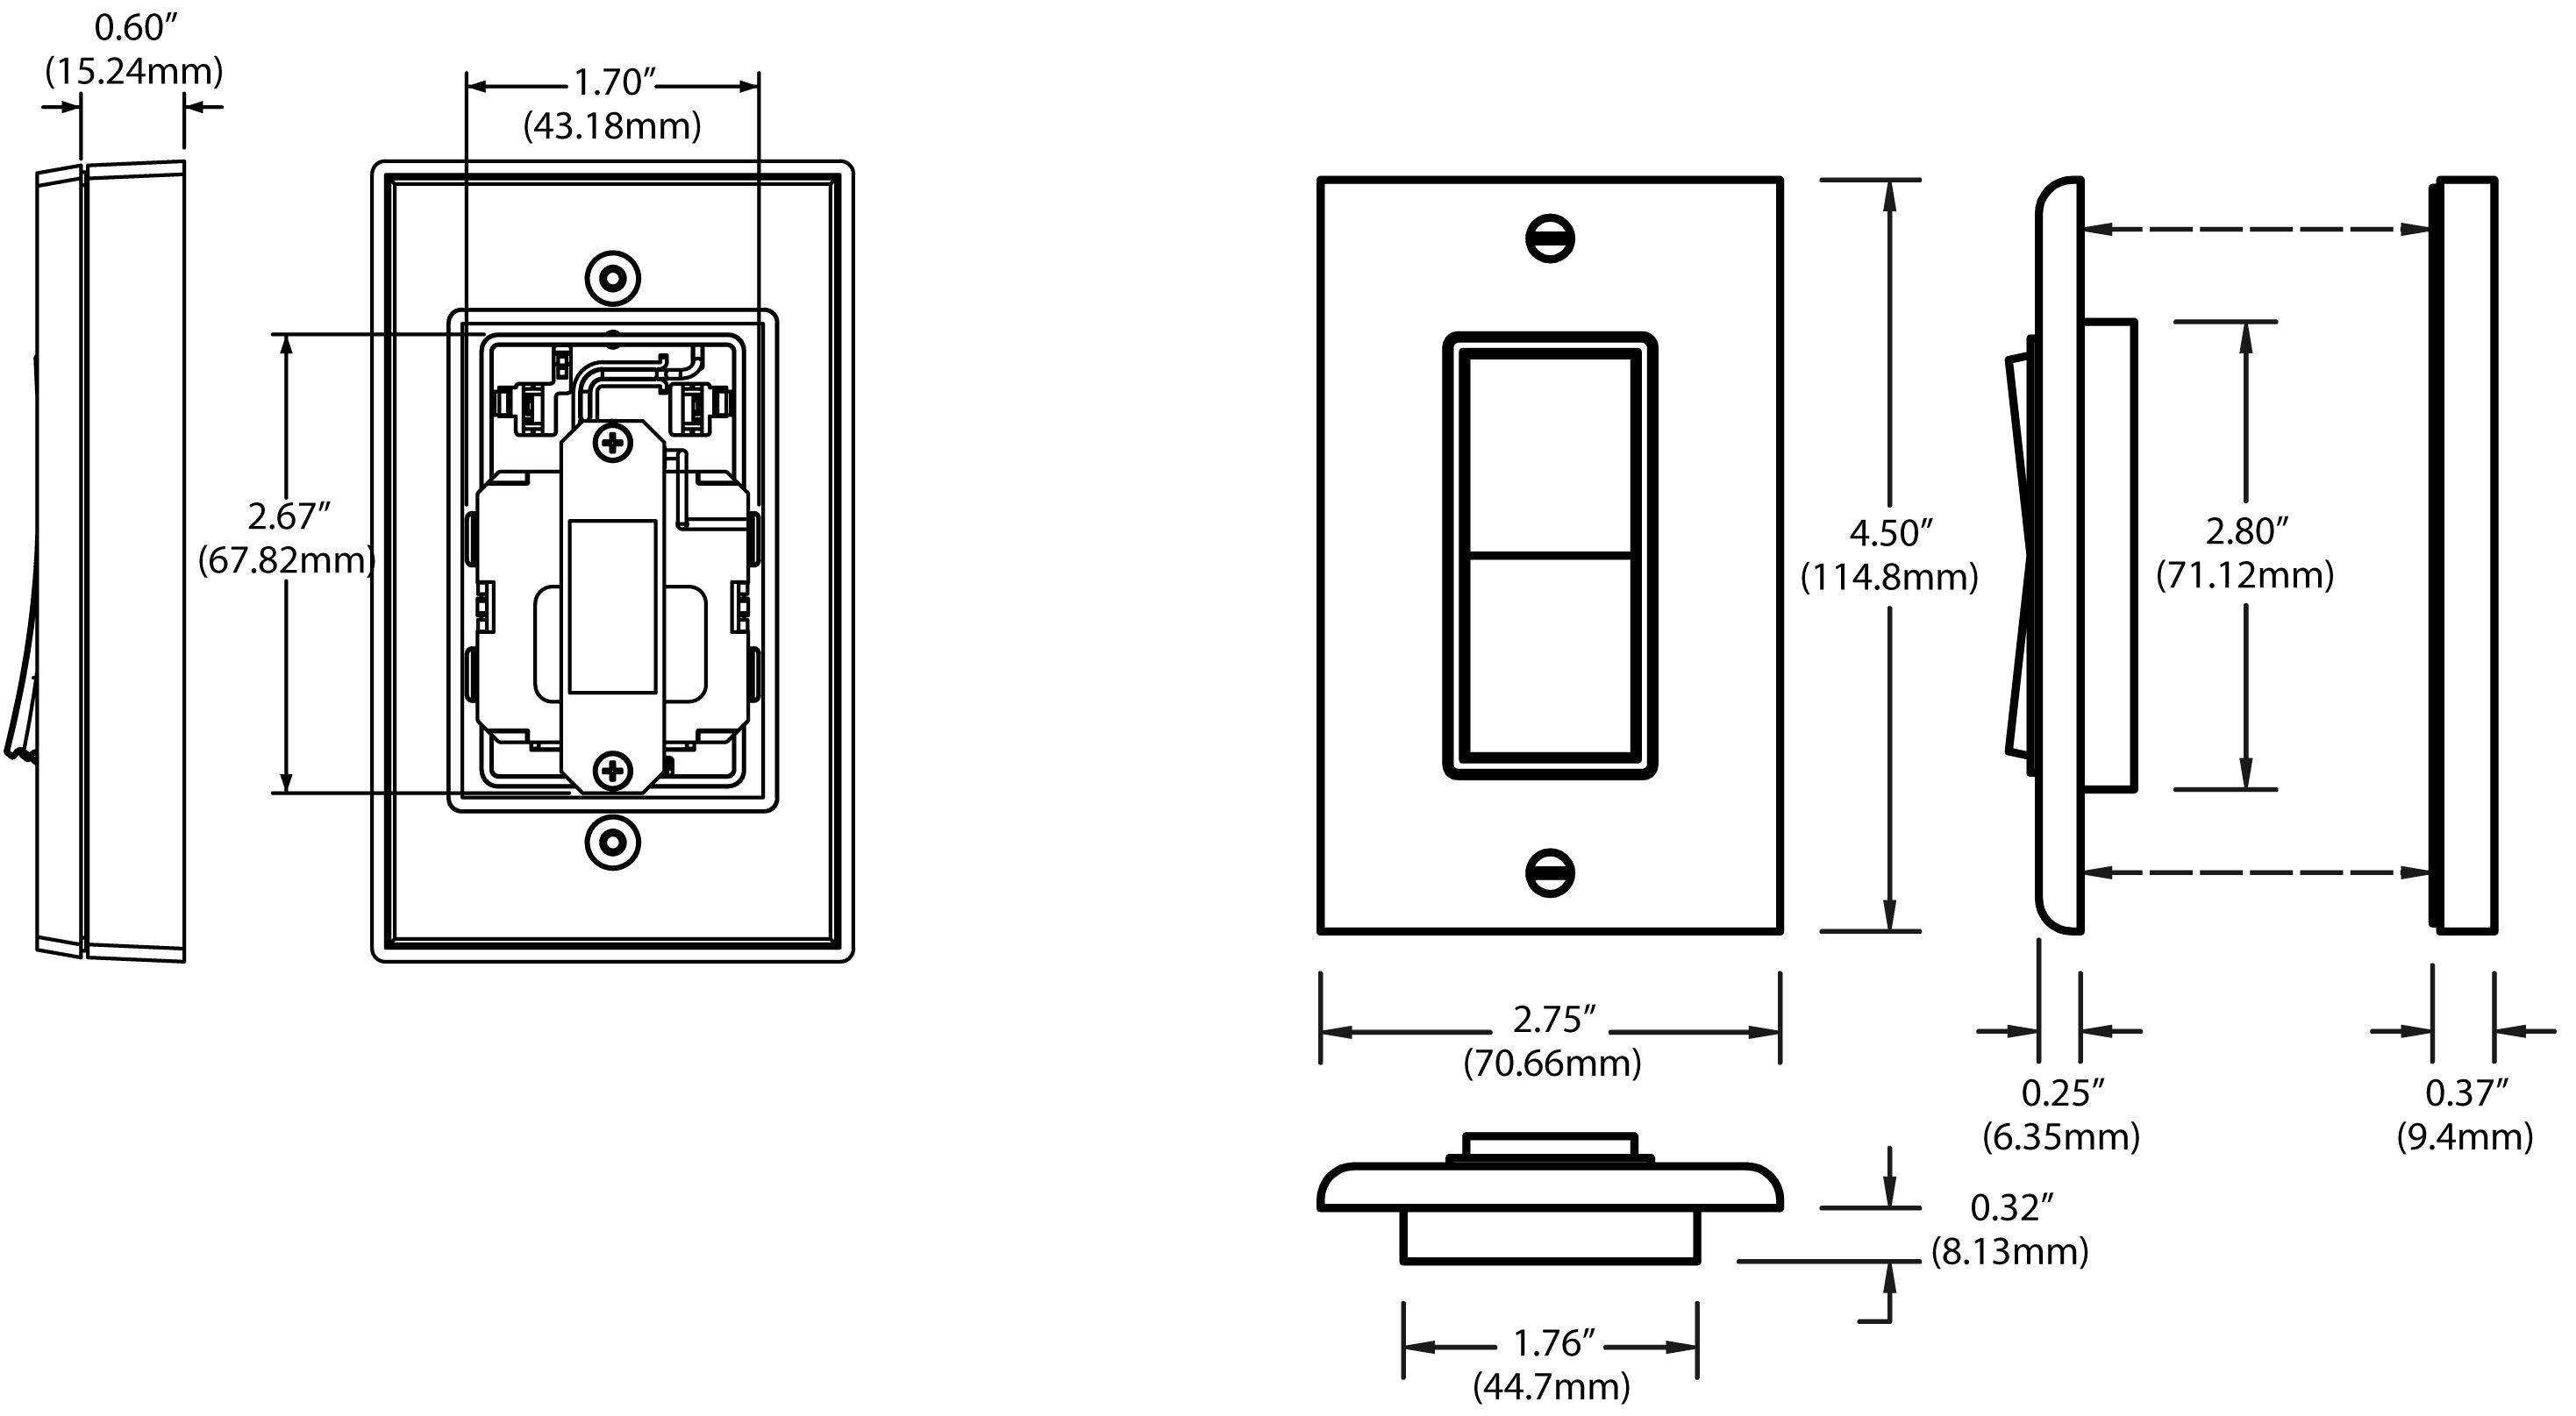 hight resolution of beautiful leviton light switch wiring diagram diagrams digramssample diagramimages wiringdiagramsample wiringdiagram